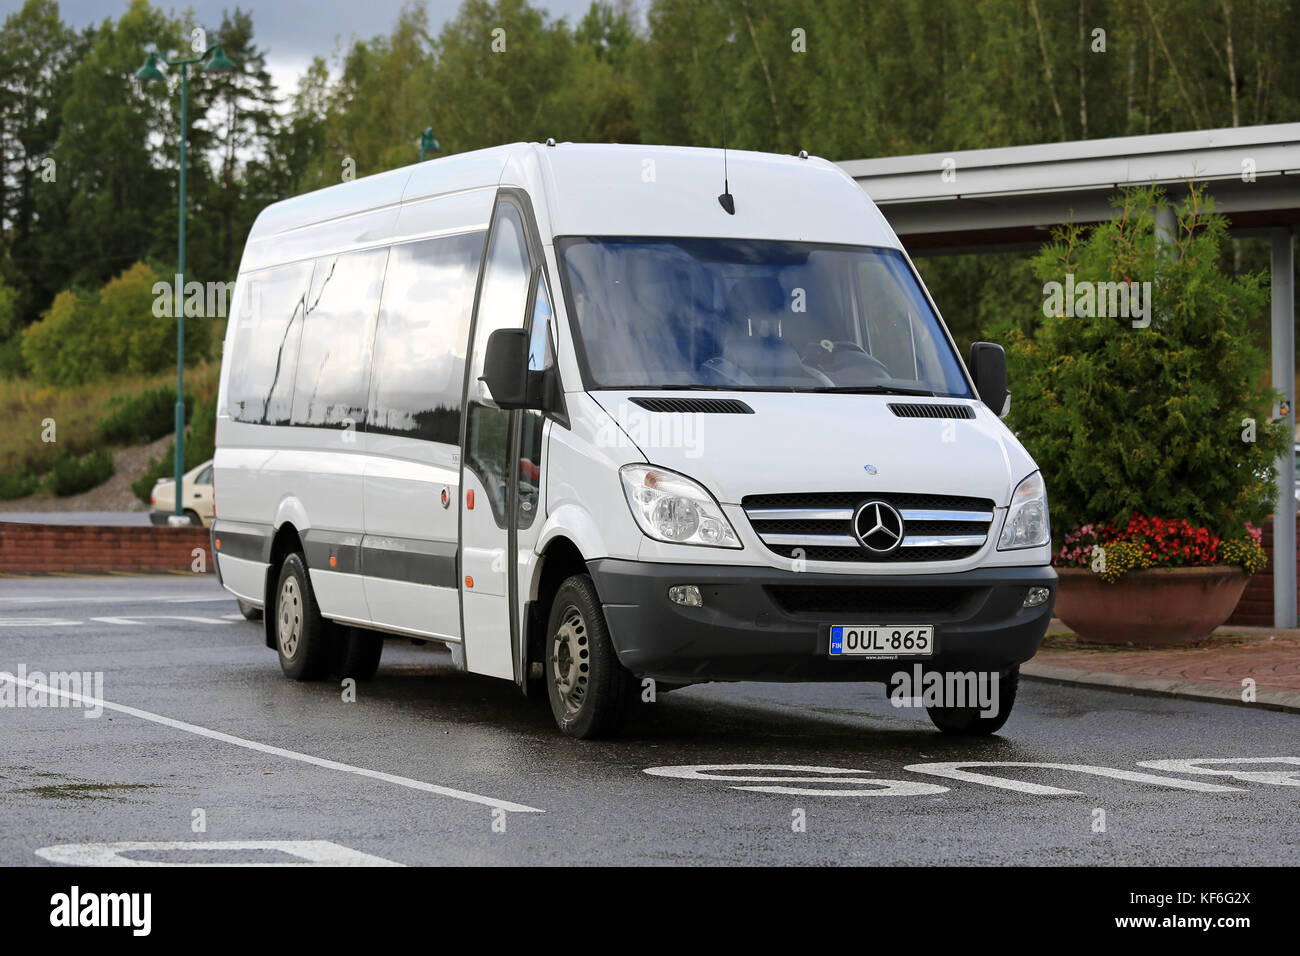 mercedes sprinter van stock photos mercedes sprinter van stock images alamy. Black Bedroom Furniture Sets. Home Design Ideas